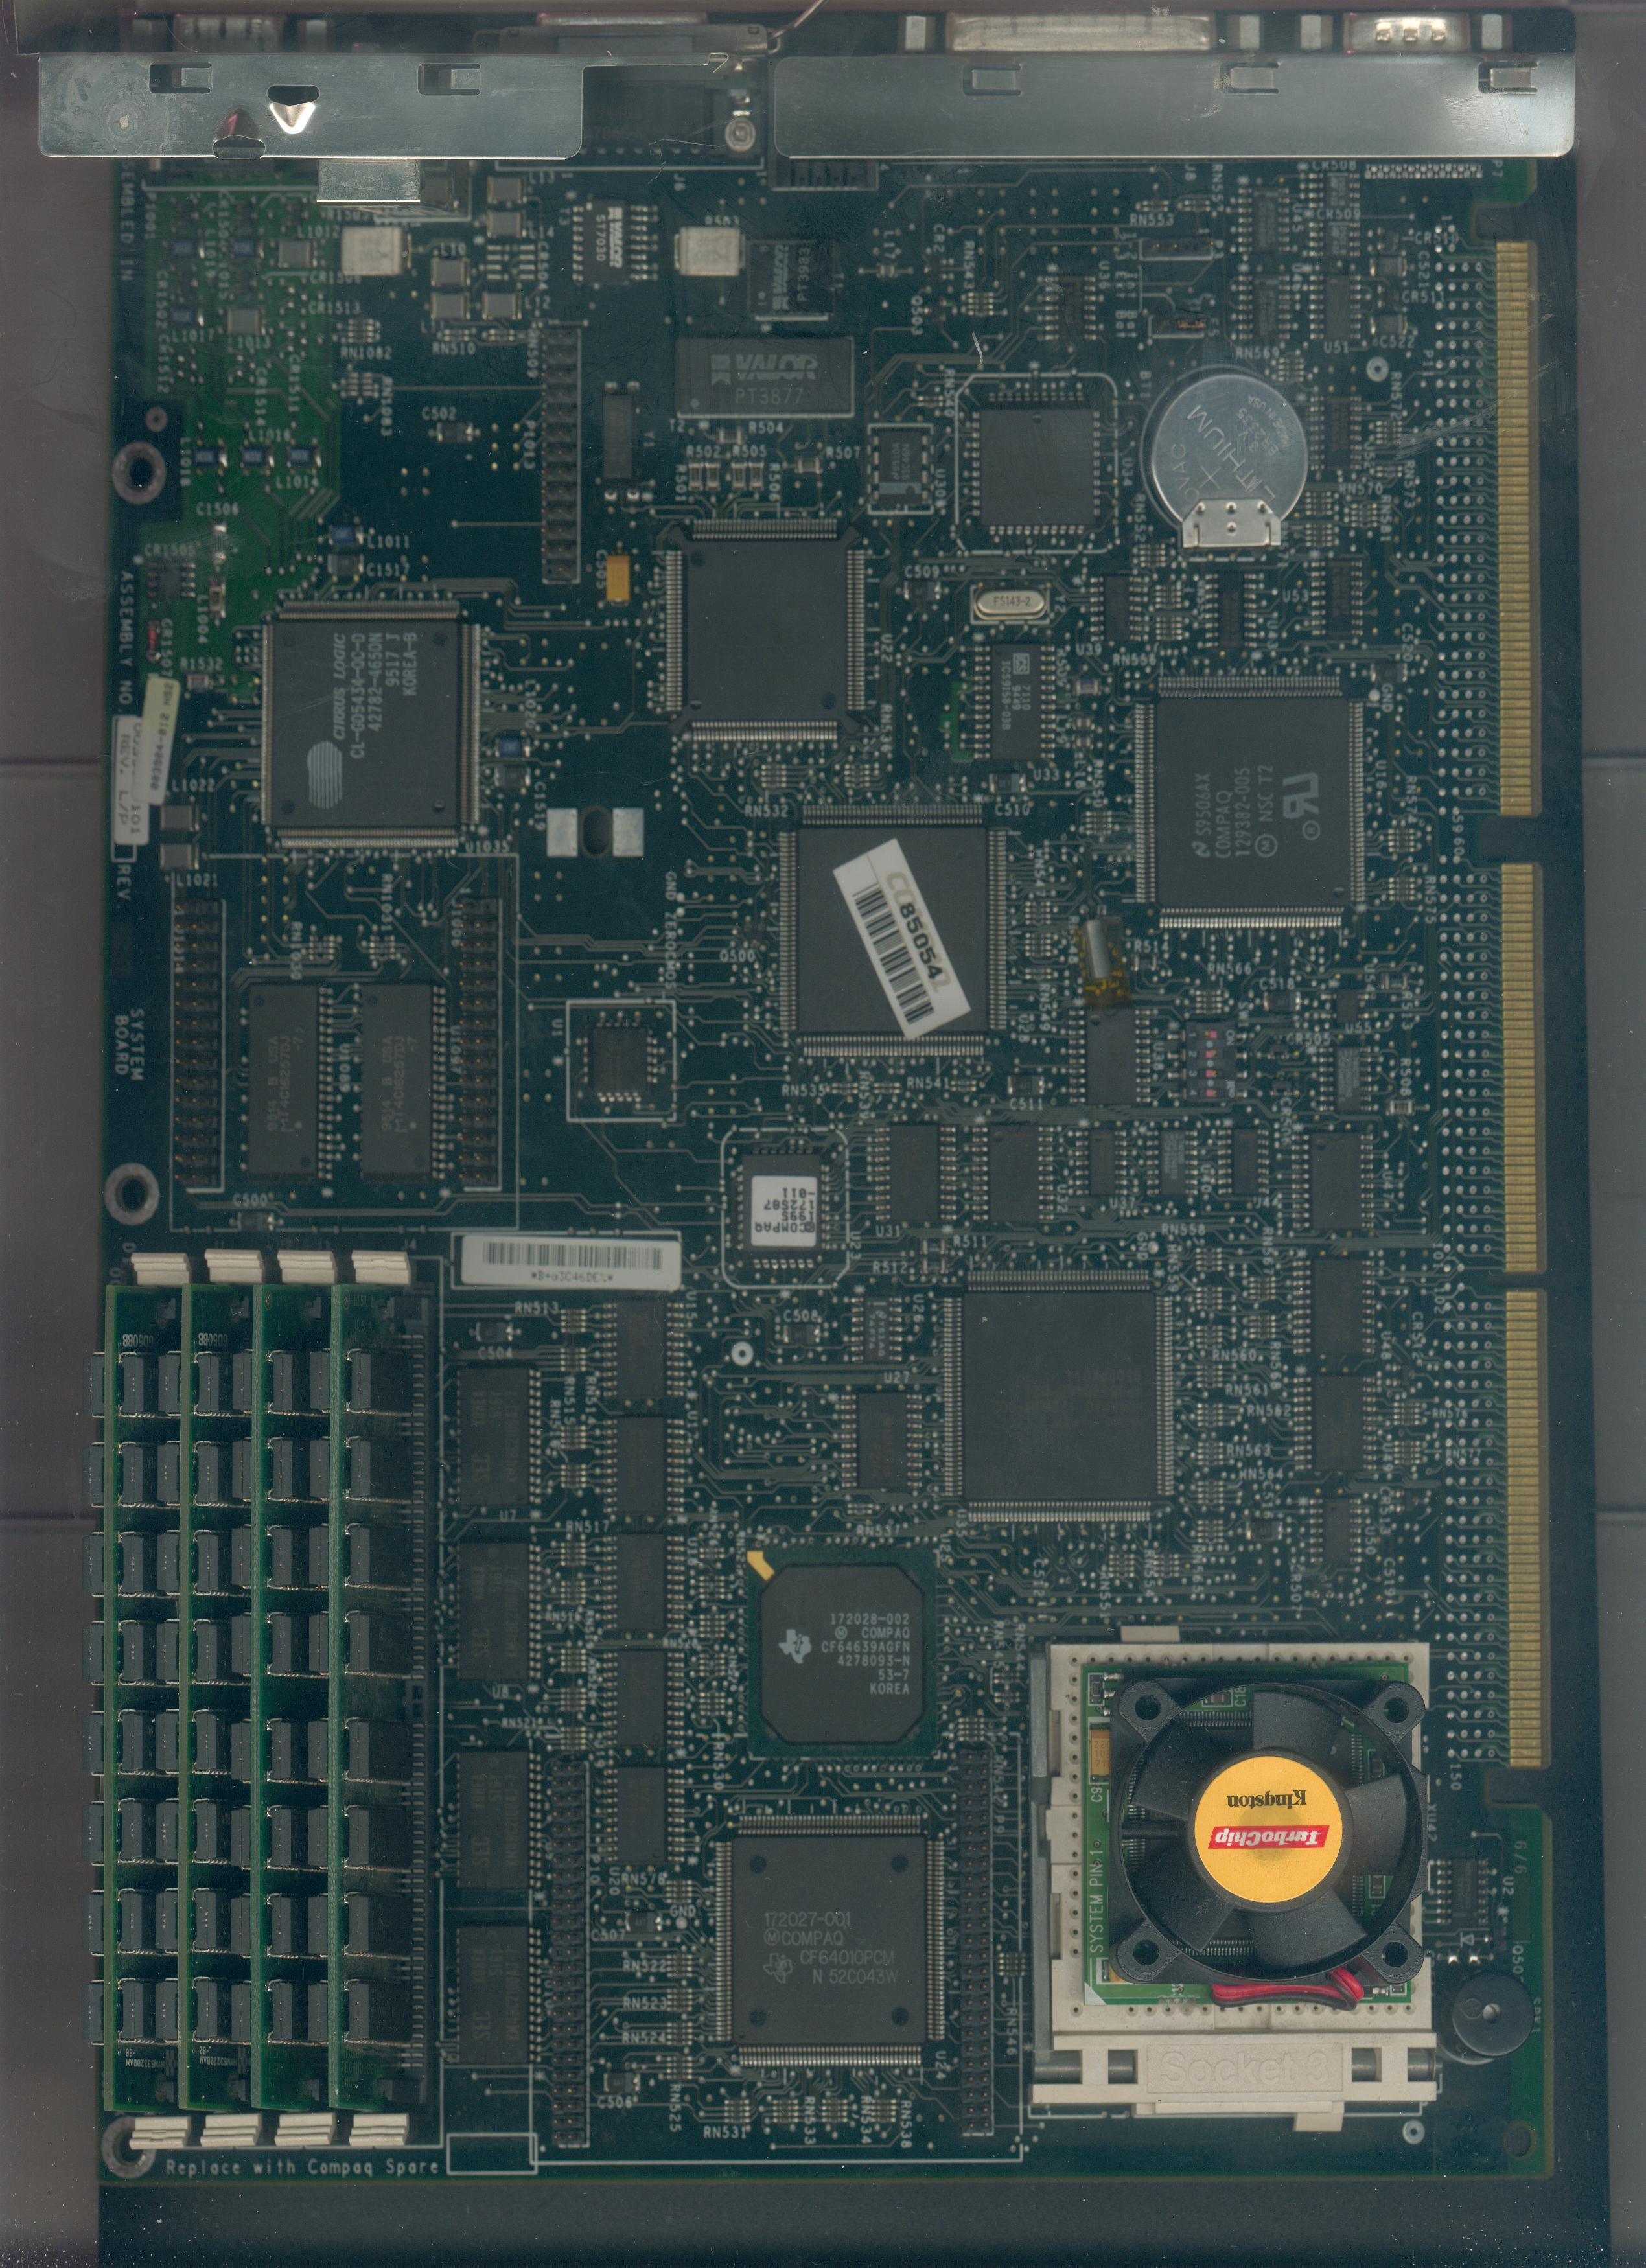 motherboard component side (c) 1994 compaq